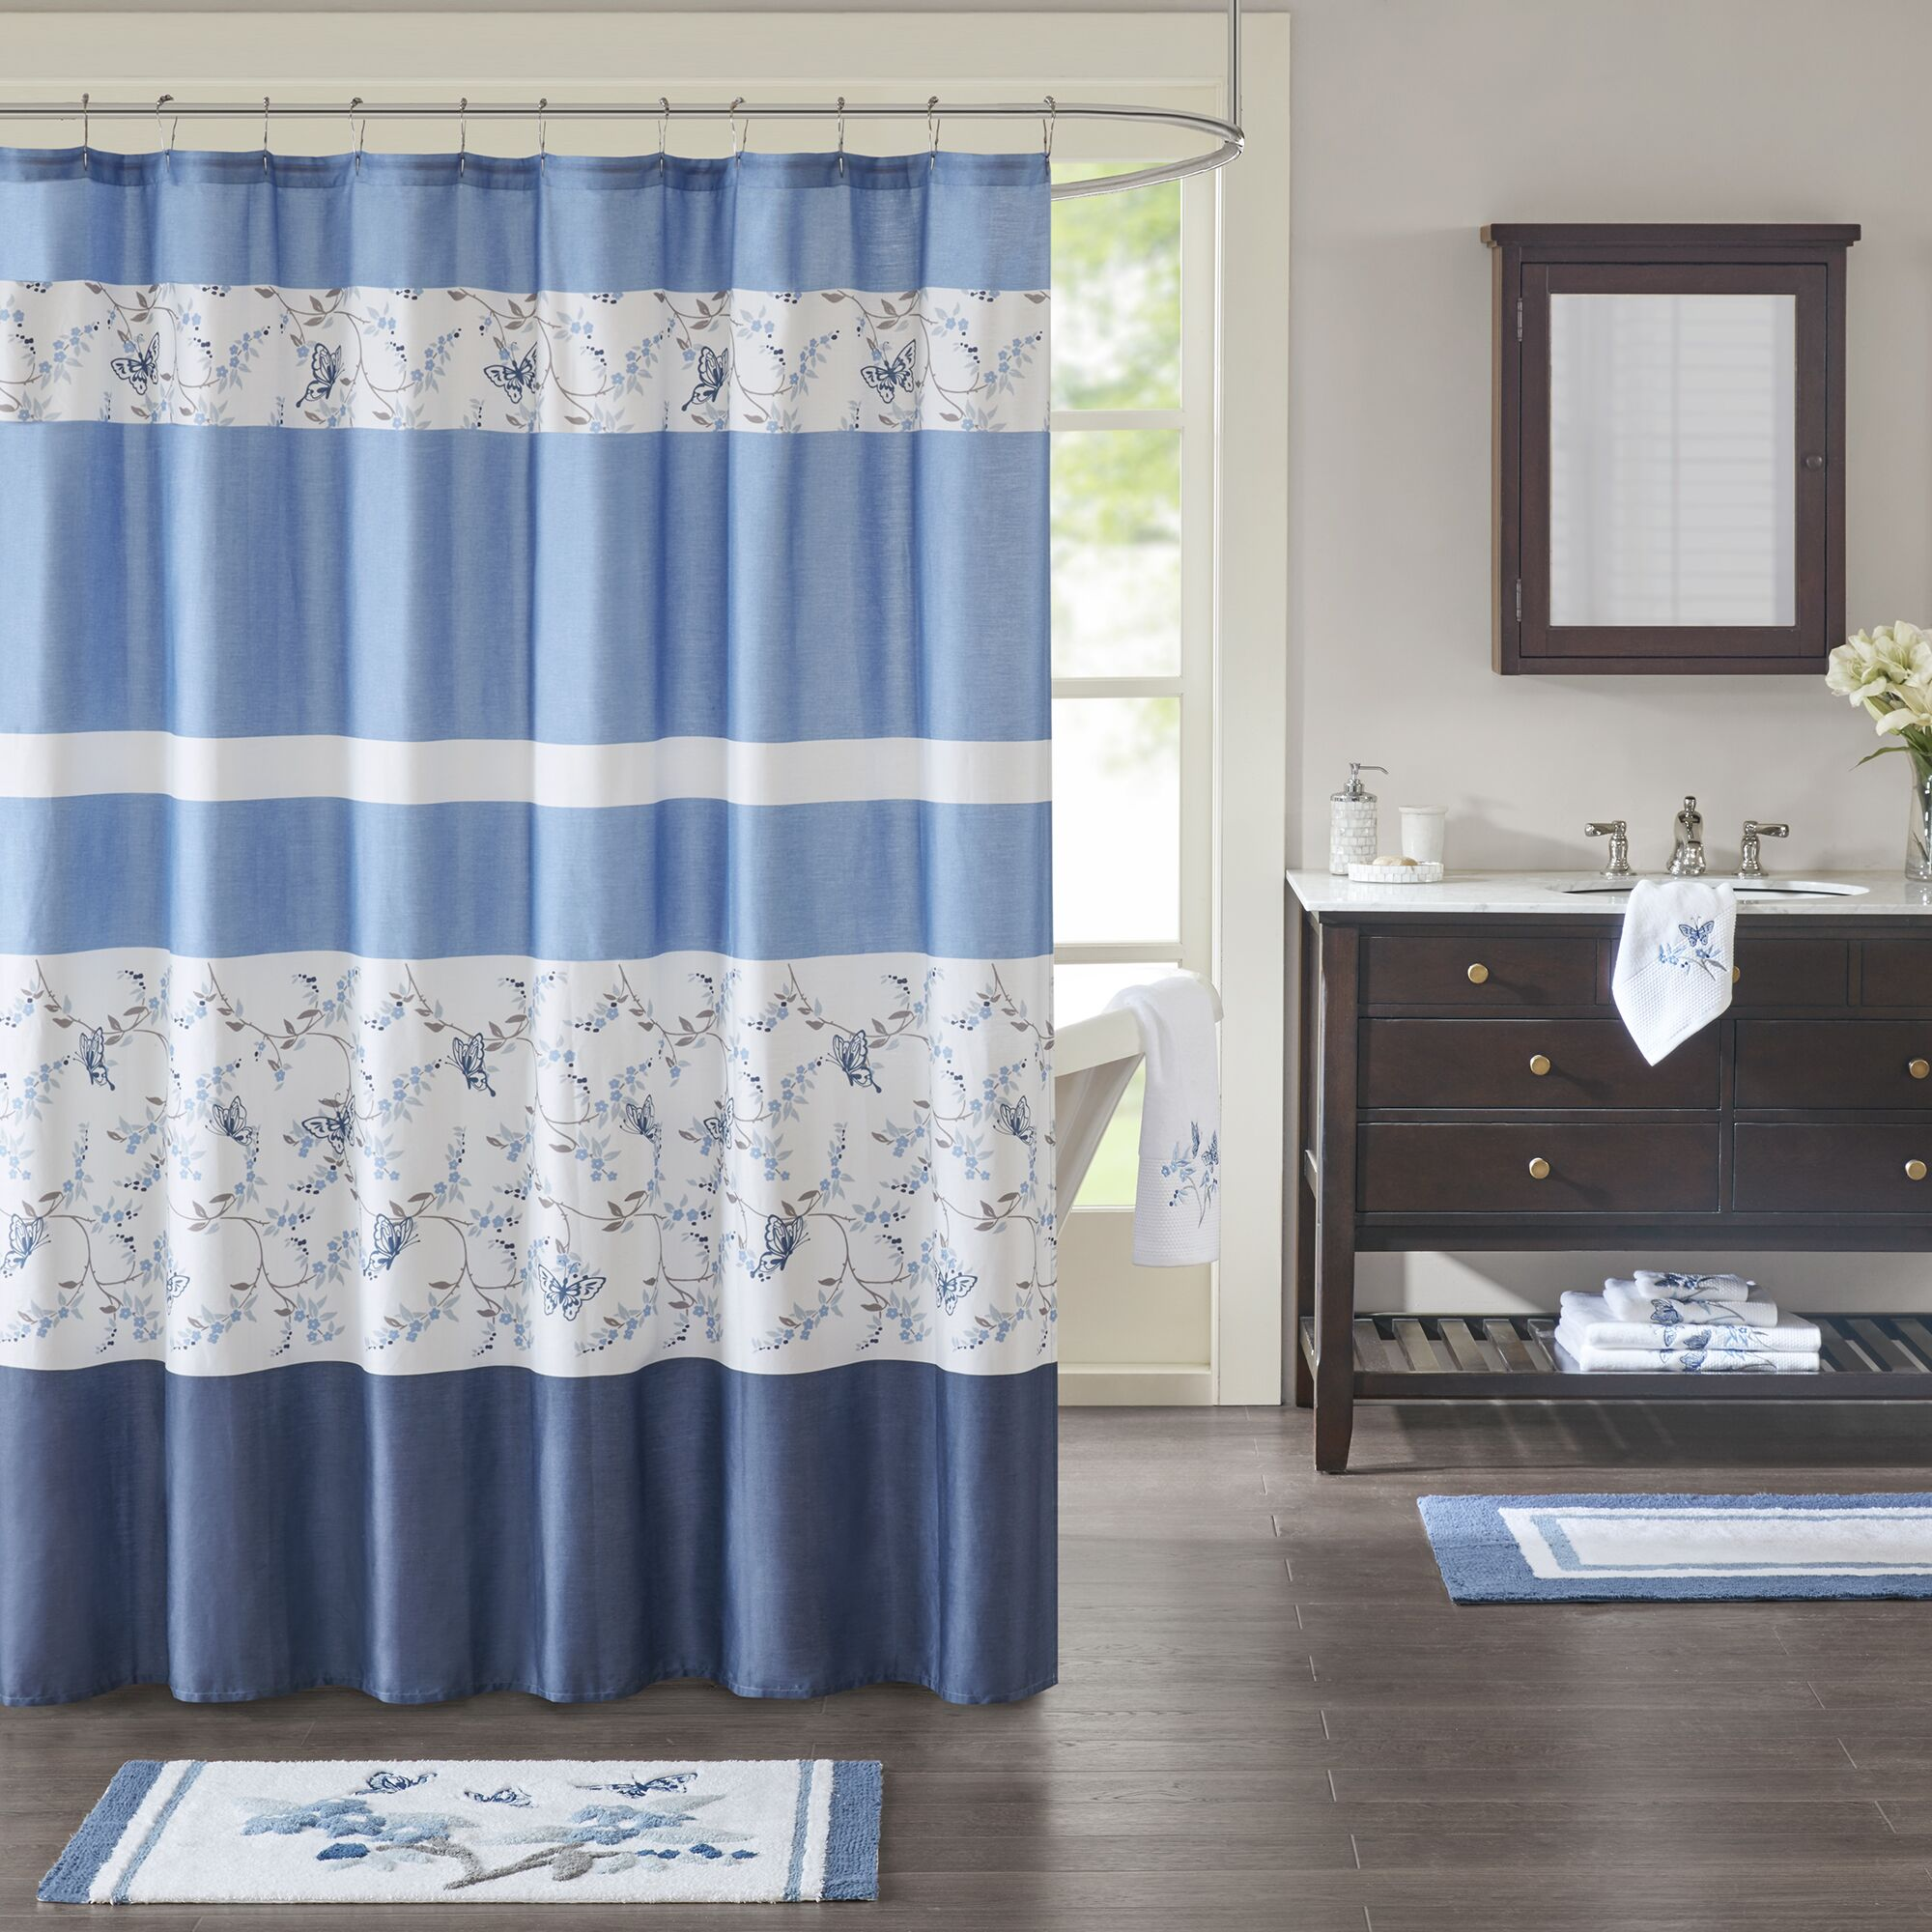 Honore 100% Cotton Shower Curtain